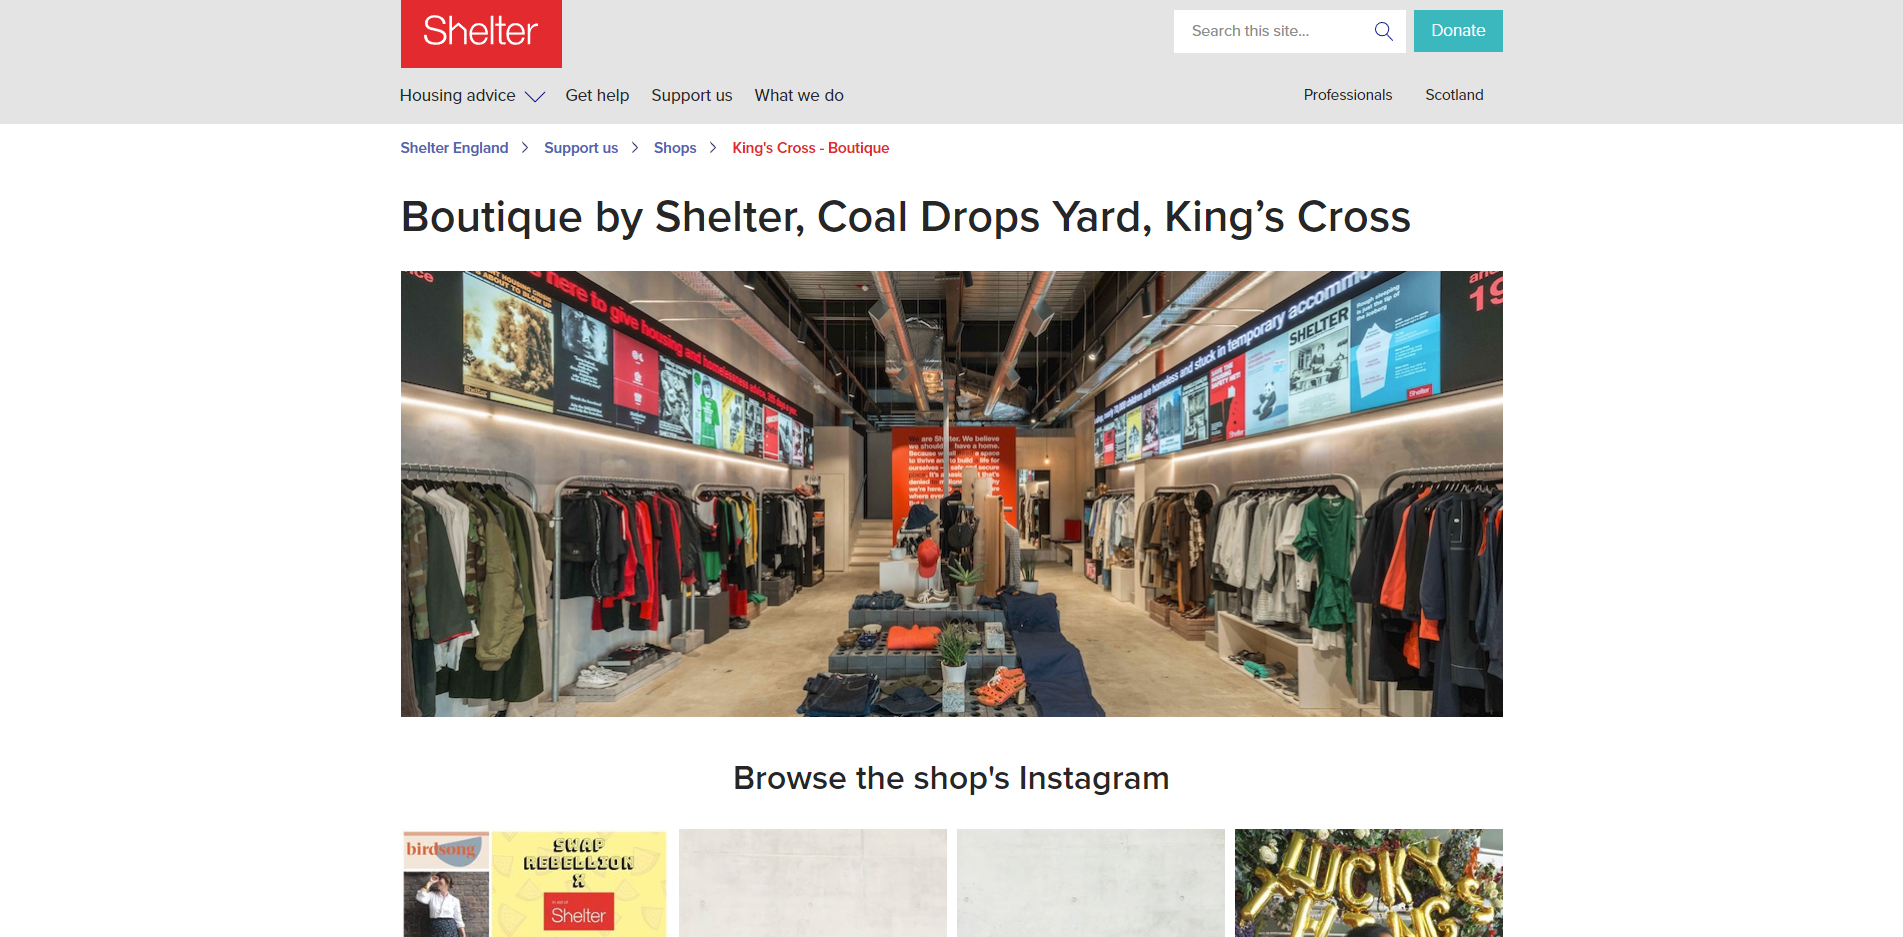 King's_Cross_-_Boutique_-_Shelter_England_-_Google_2019-07-18_10-35-37.png